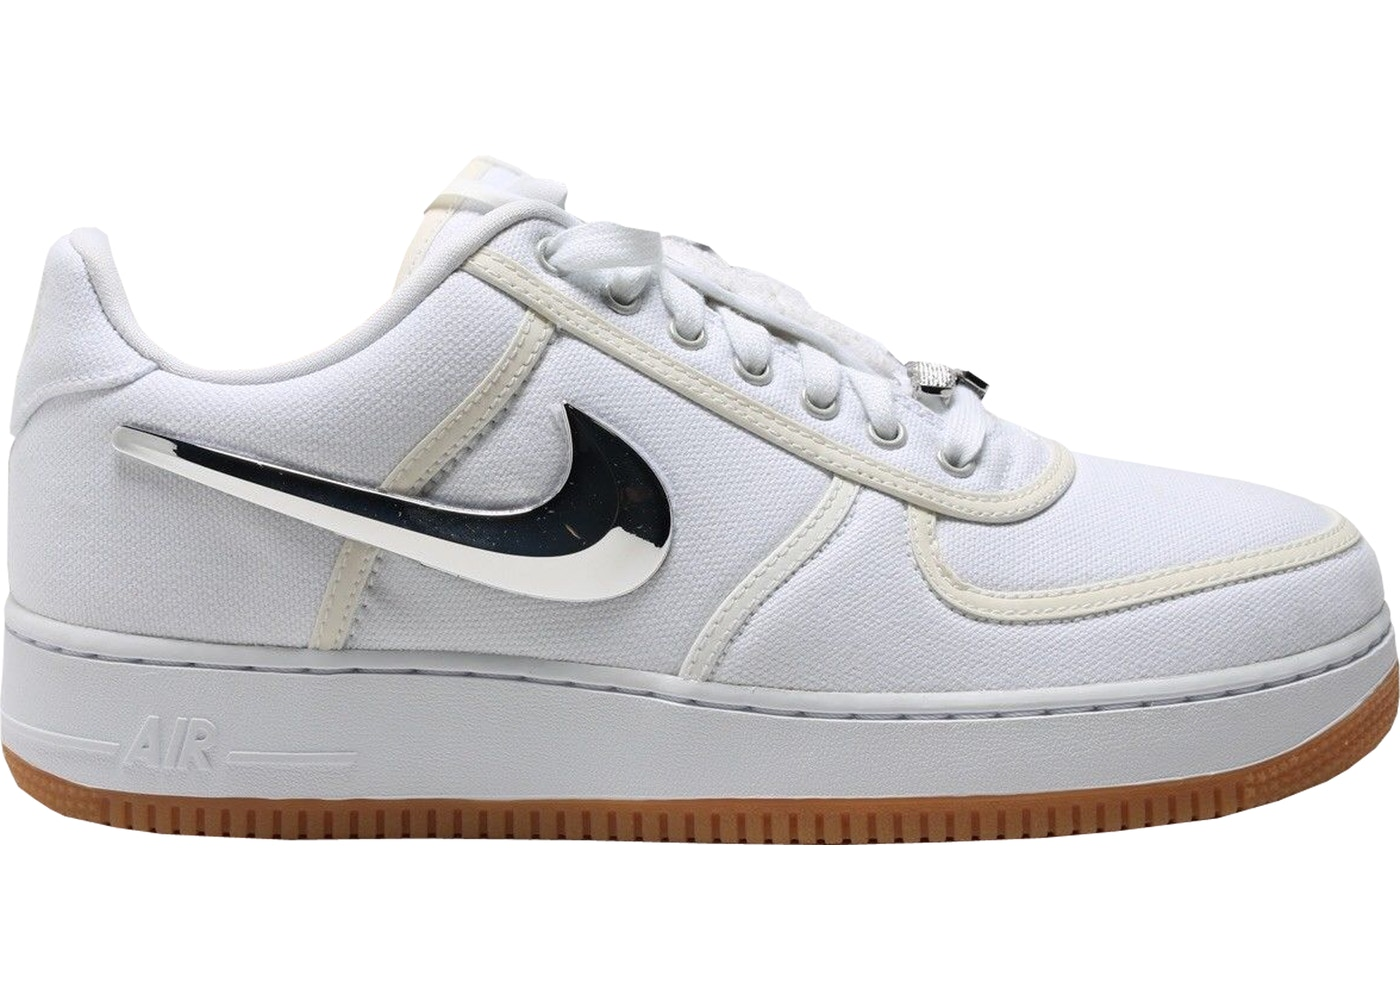 Description Nike Air Force 1 '07 LV8 Leather Originally released in , the Nike Air Force 1 was the first Nike model to feature